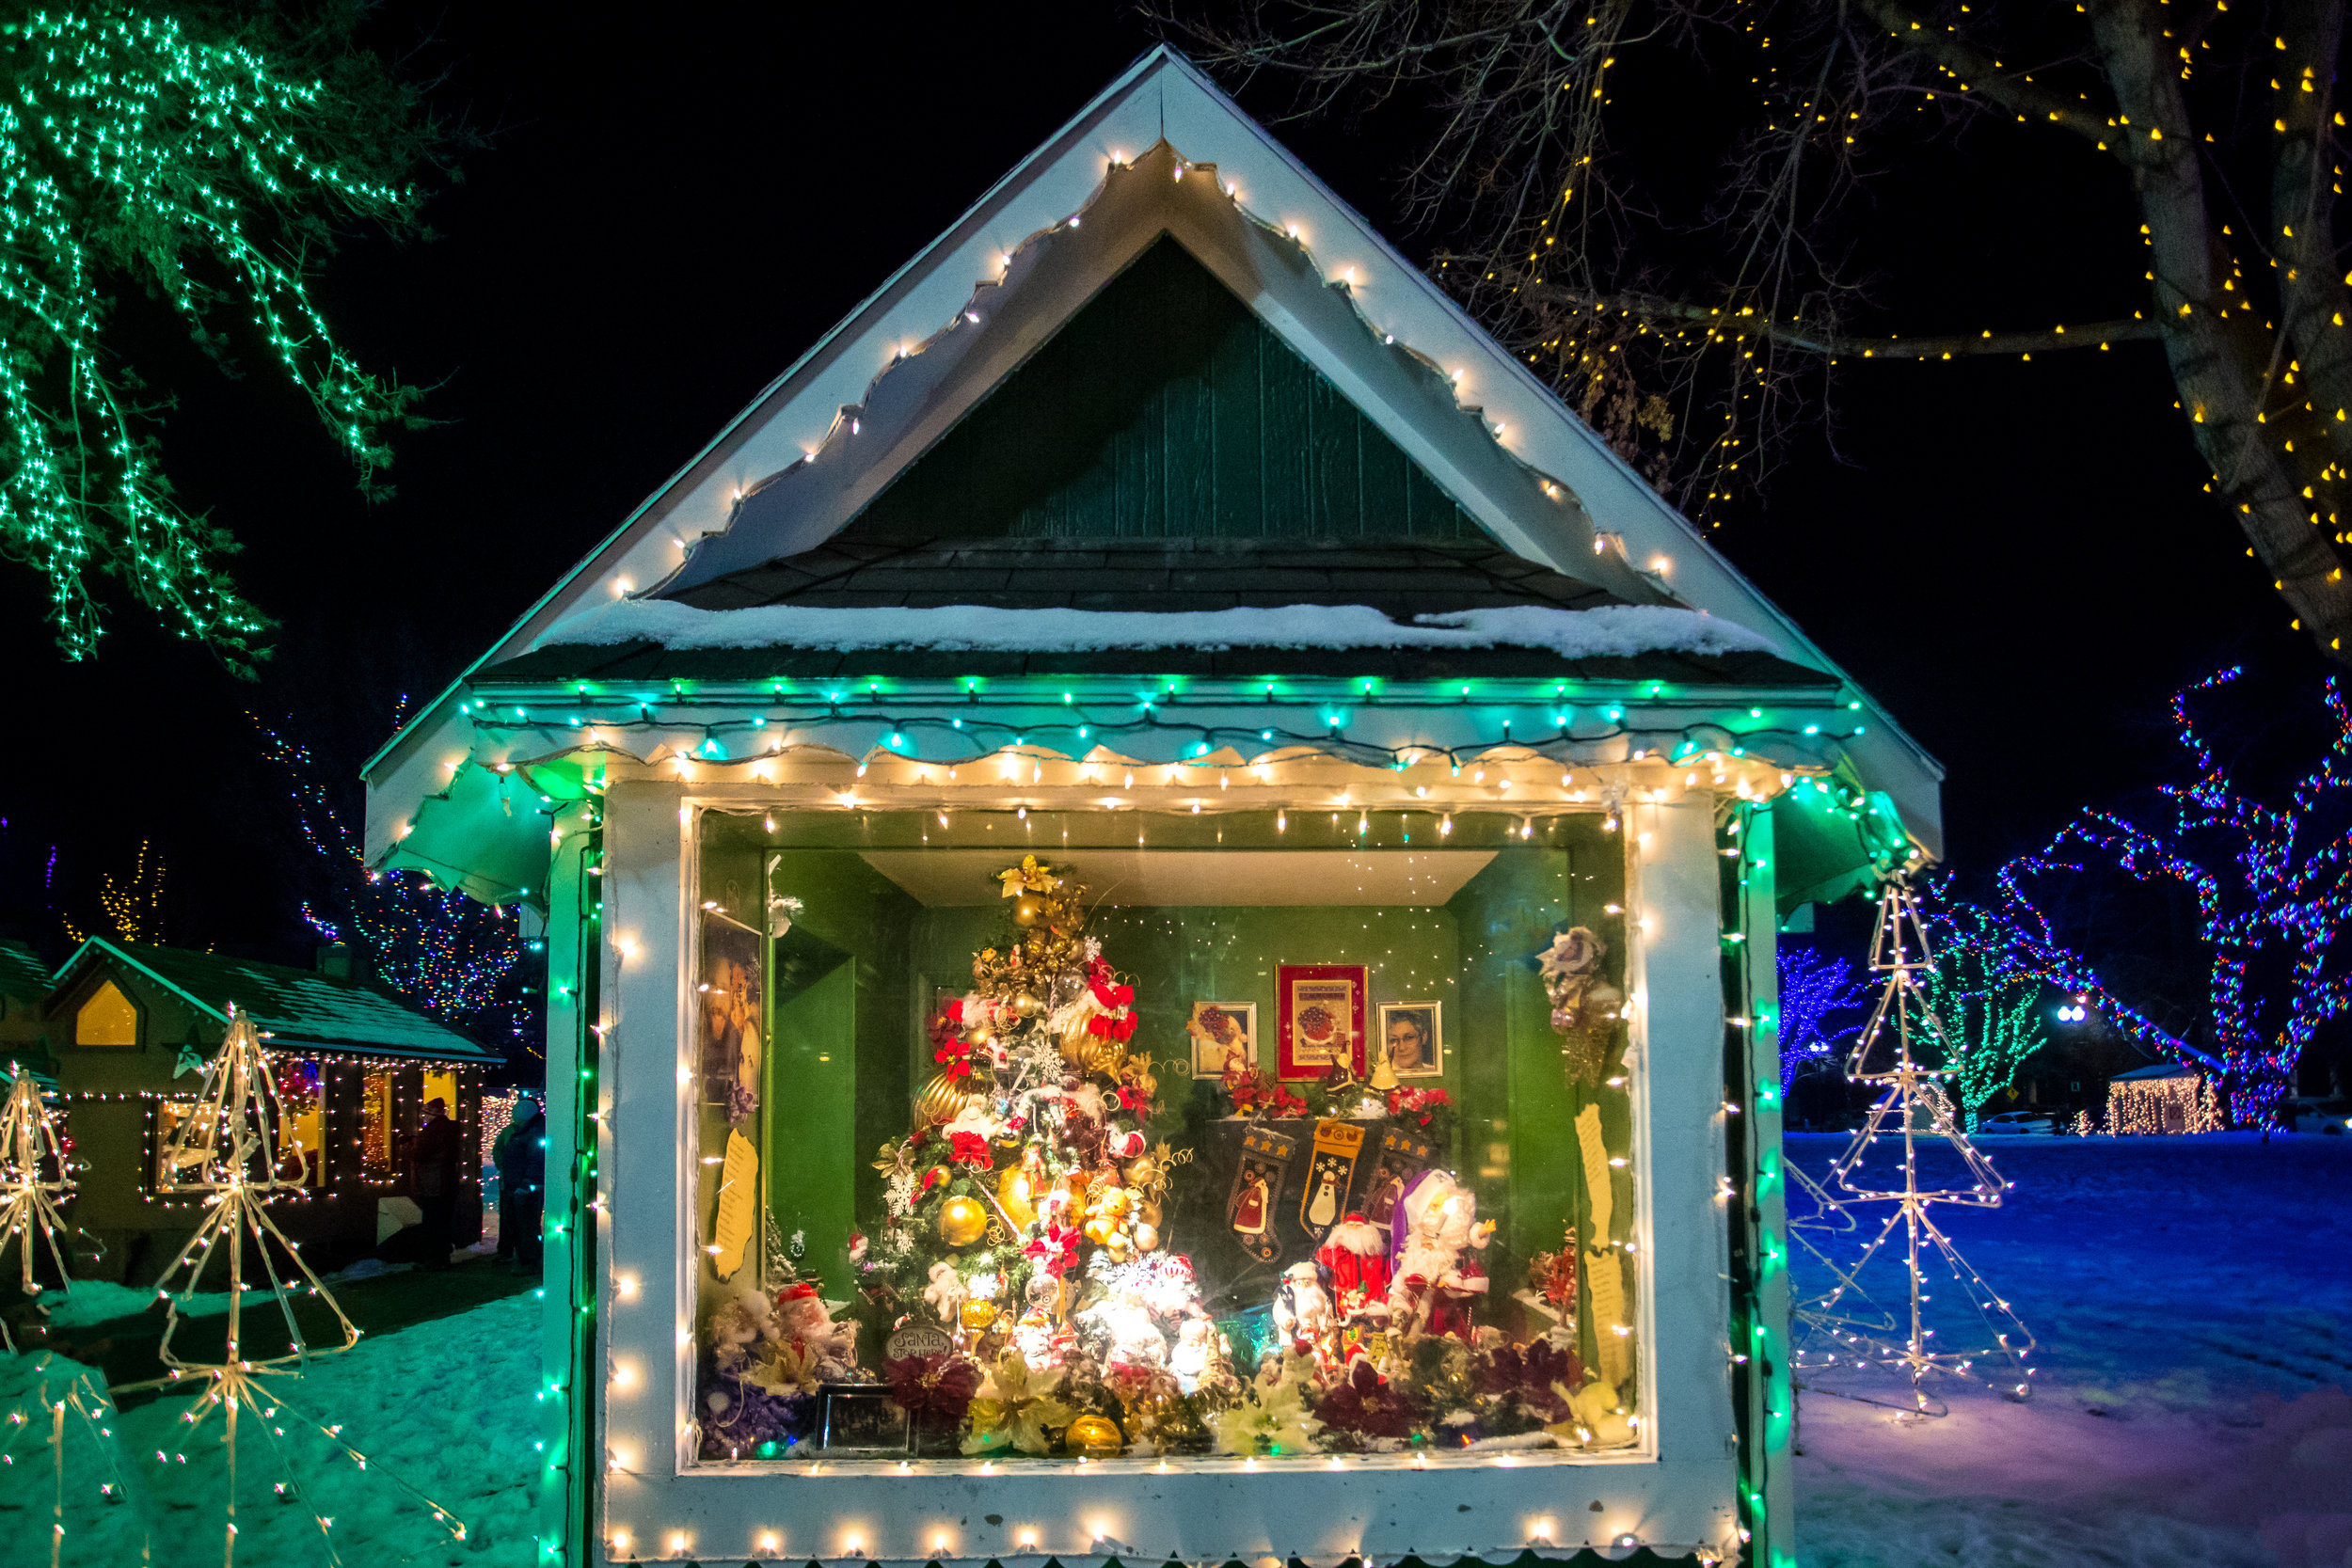 171226_christmasVillage1079-Edit.jpg